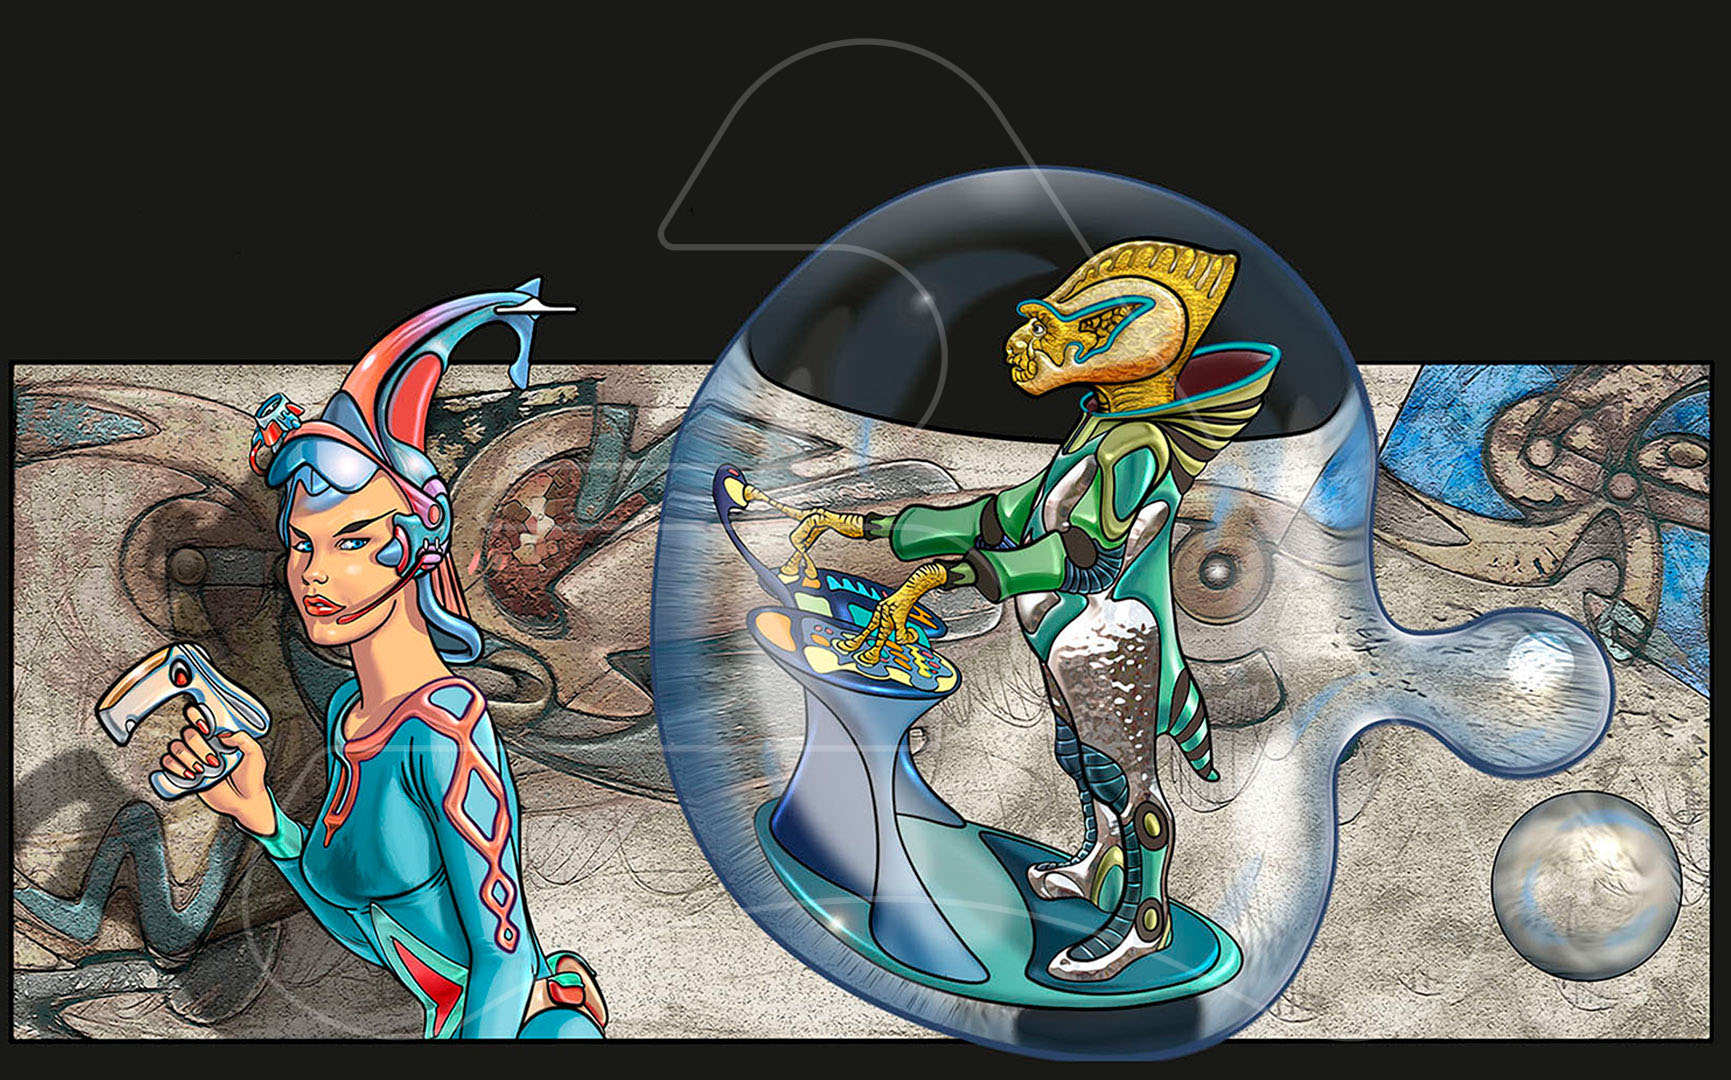 Comic The Seti's moons / Kaibide collection / Digital illustration